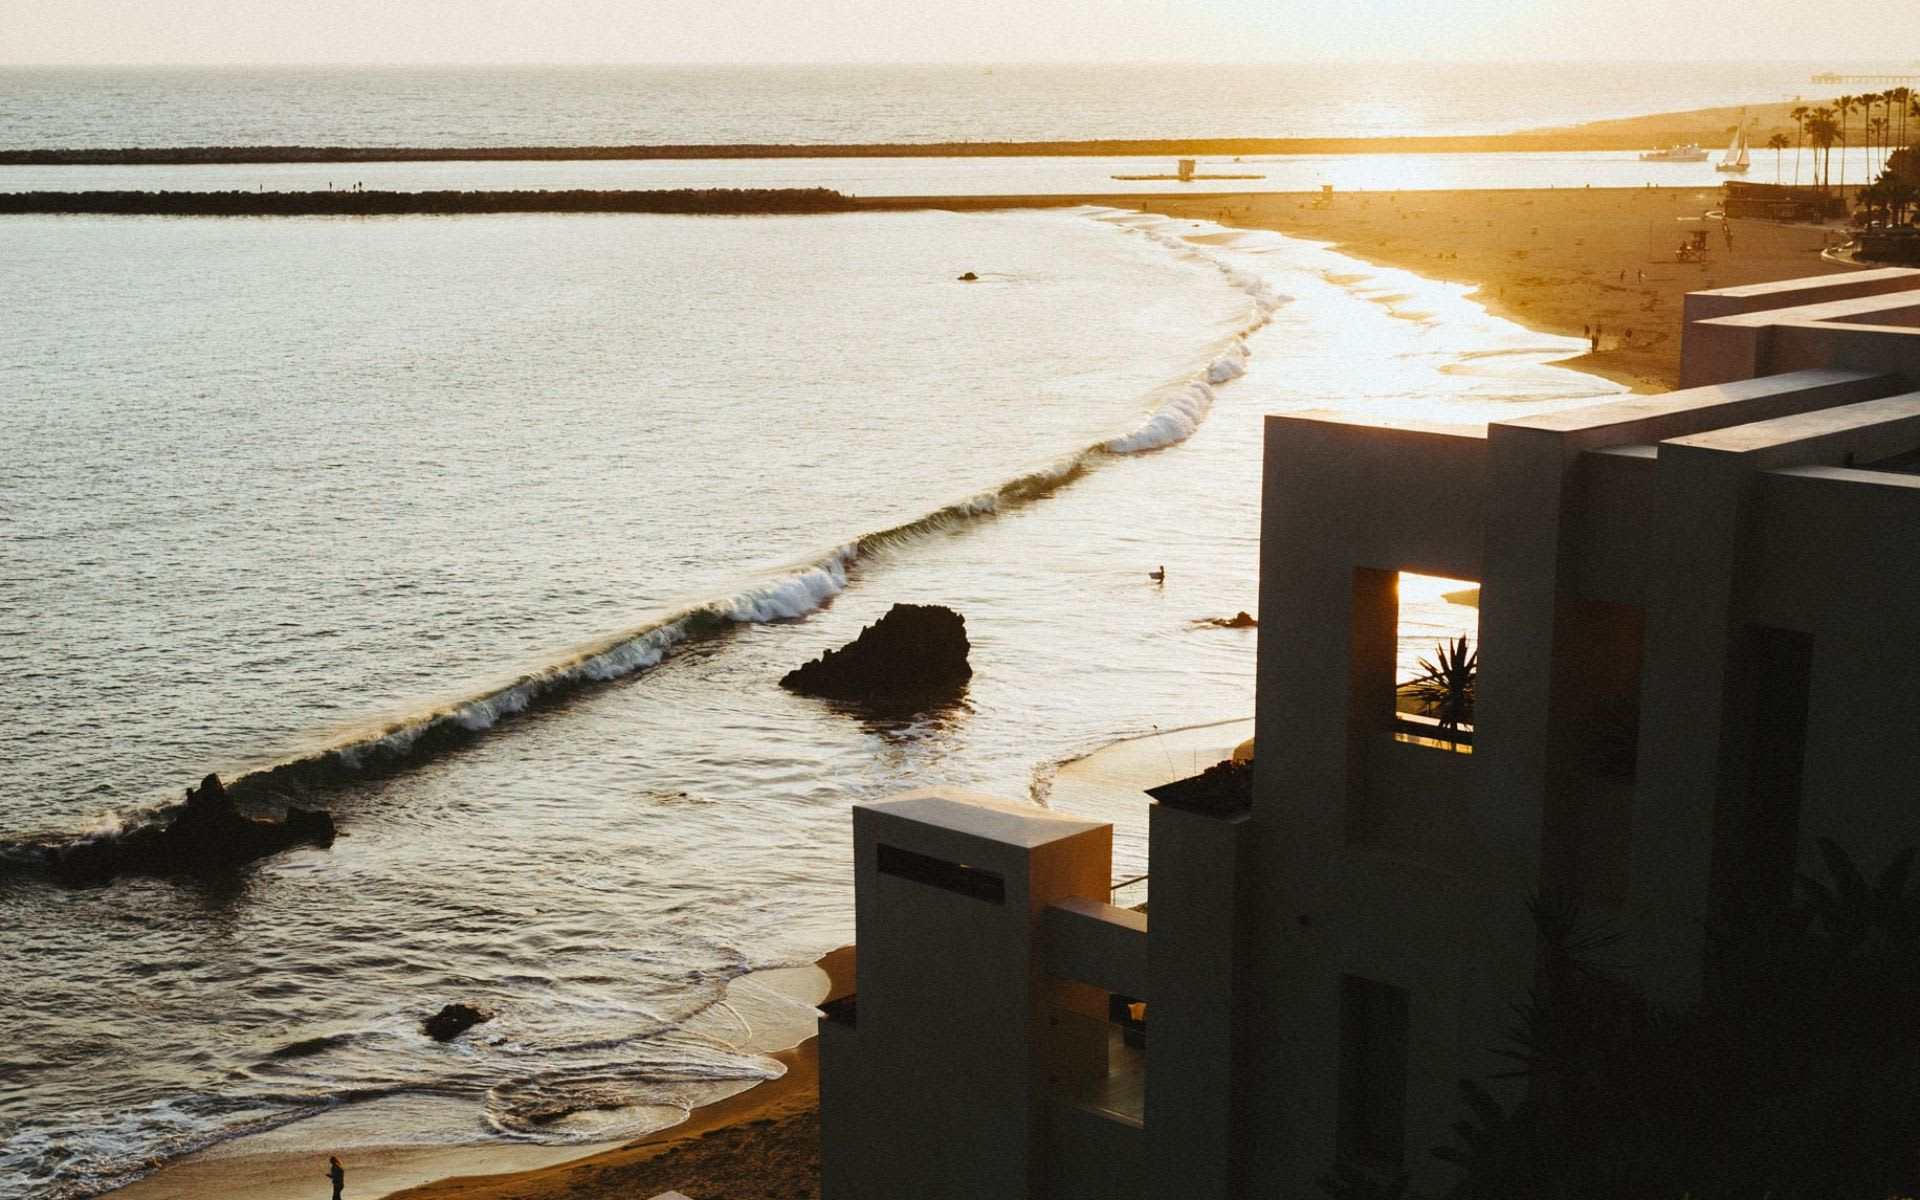 4 Historical Facts You Didn't Know About Corona del Mar